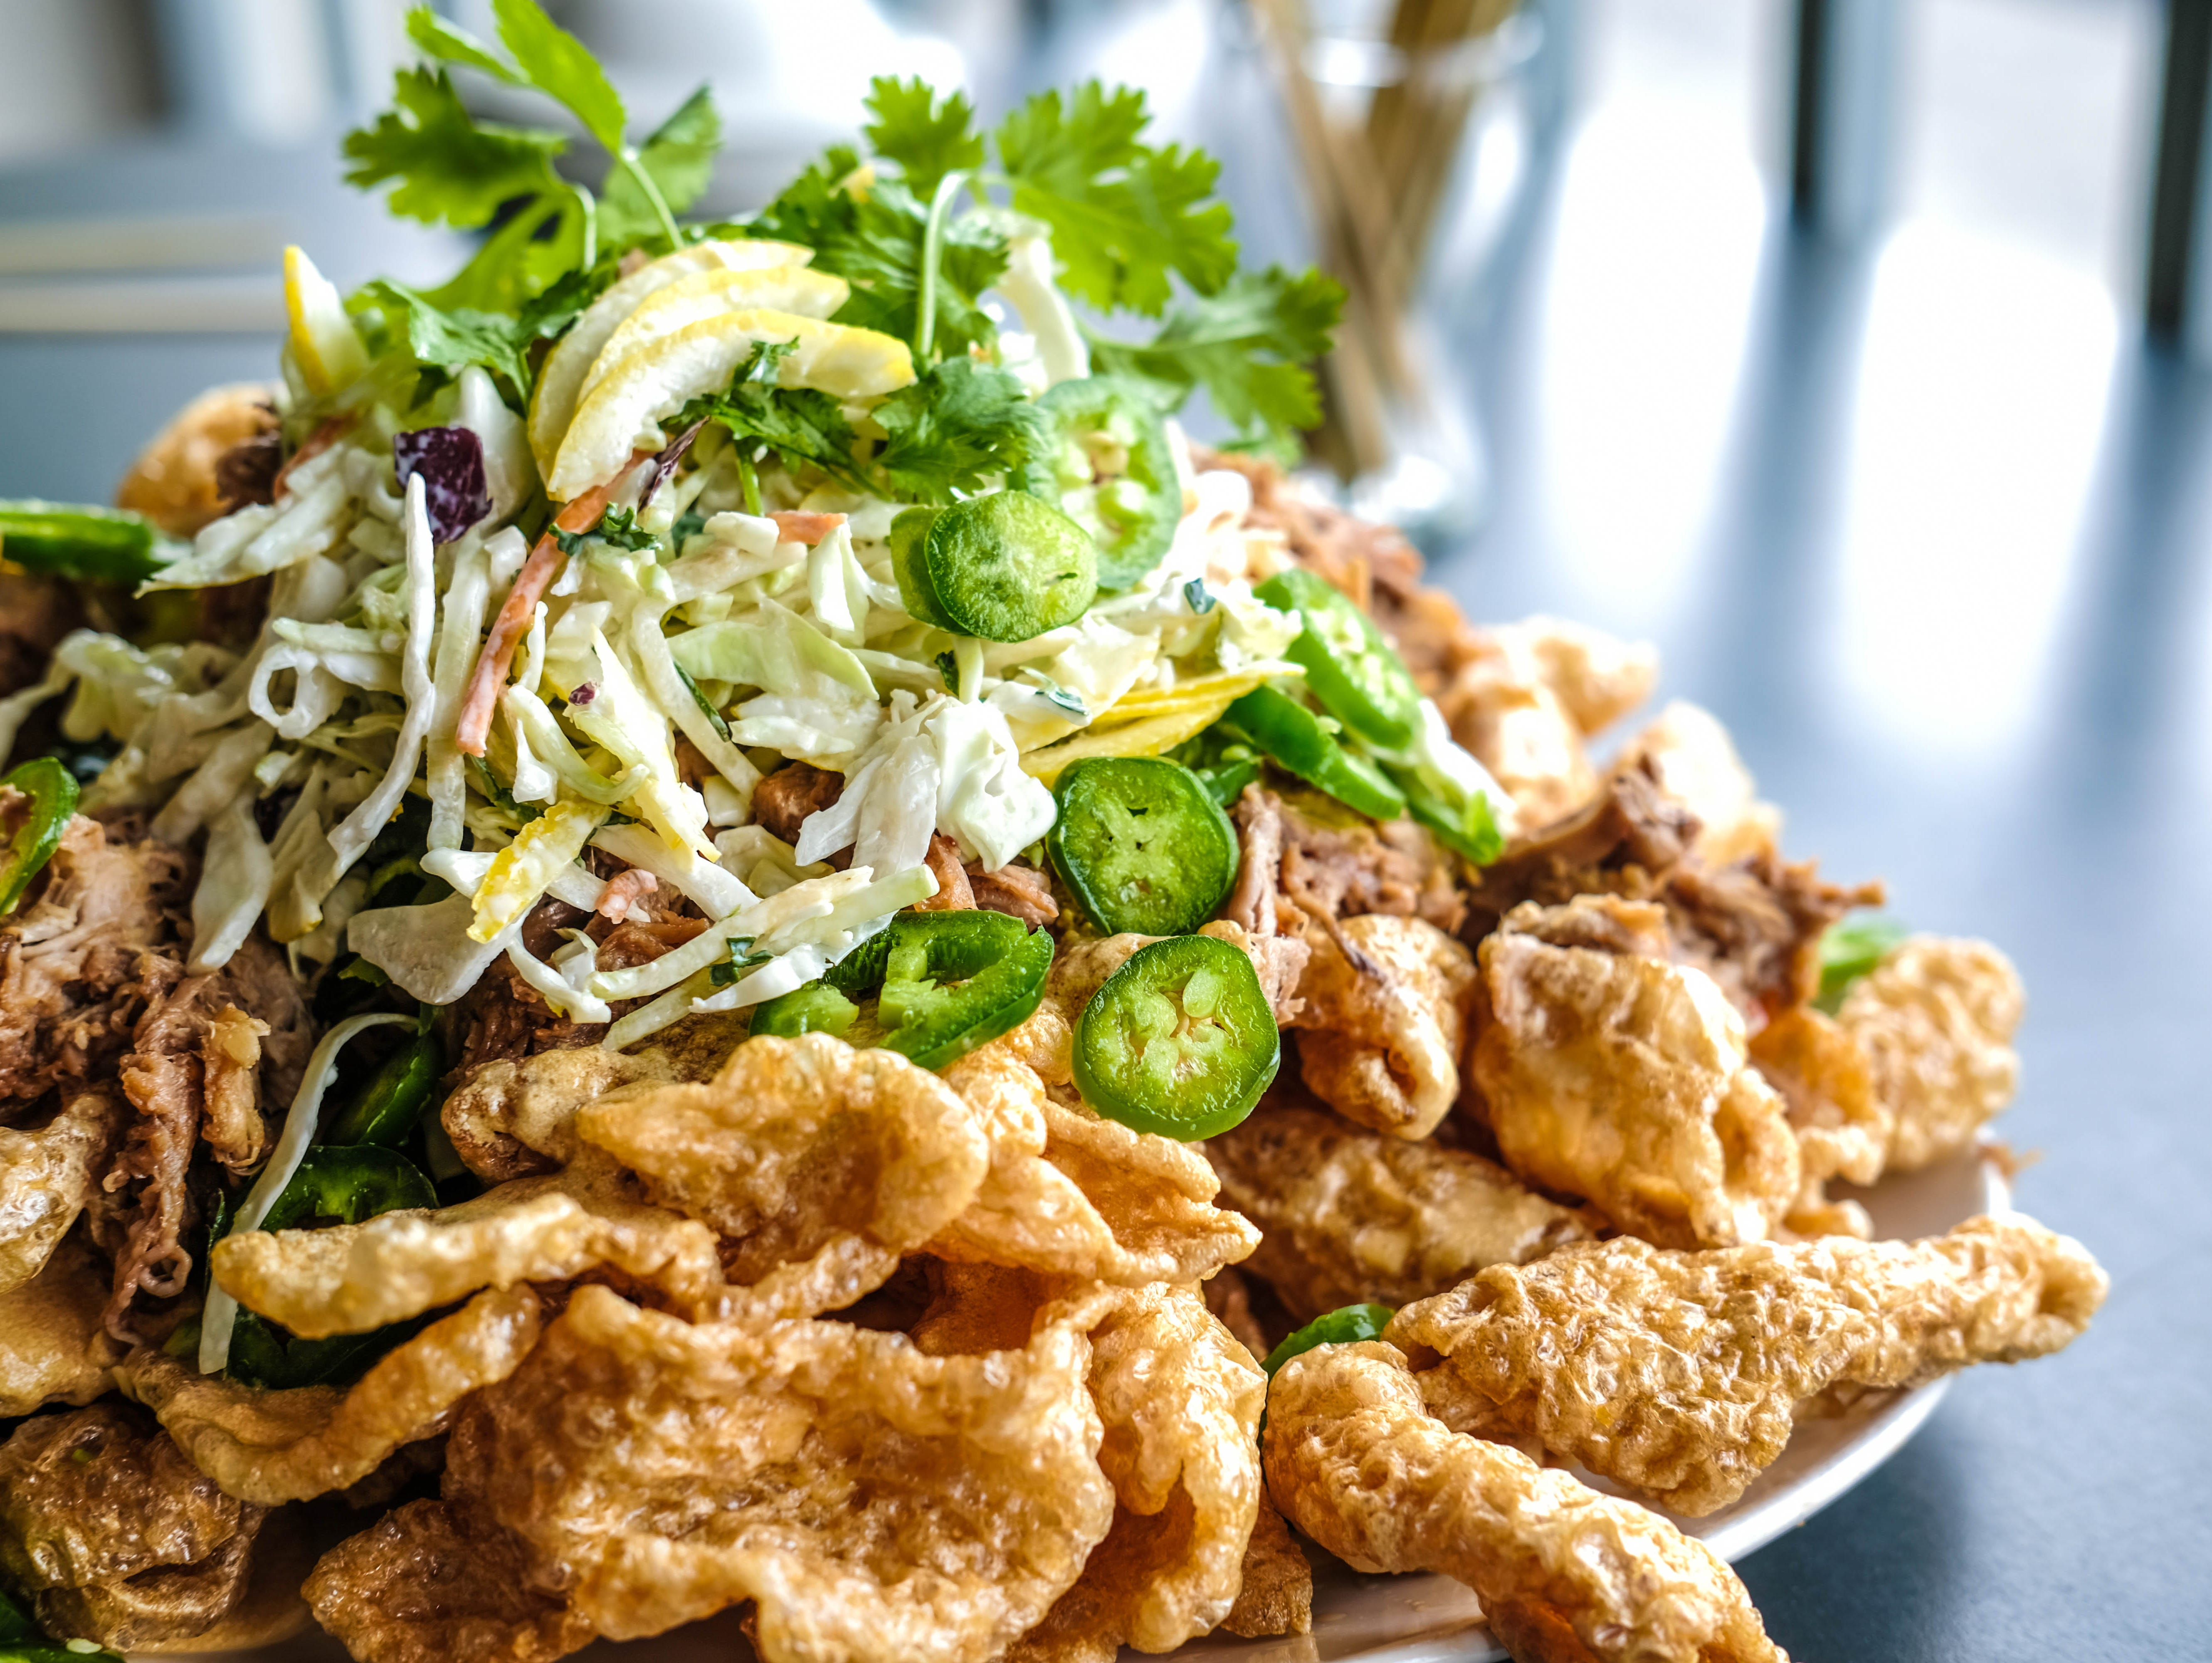 Pork rind nachos recipe courtesy of Ray Lampe and Taste of the NFL.